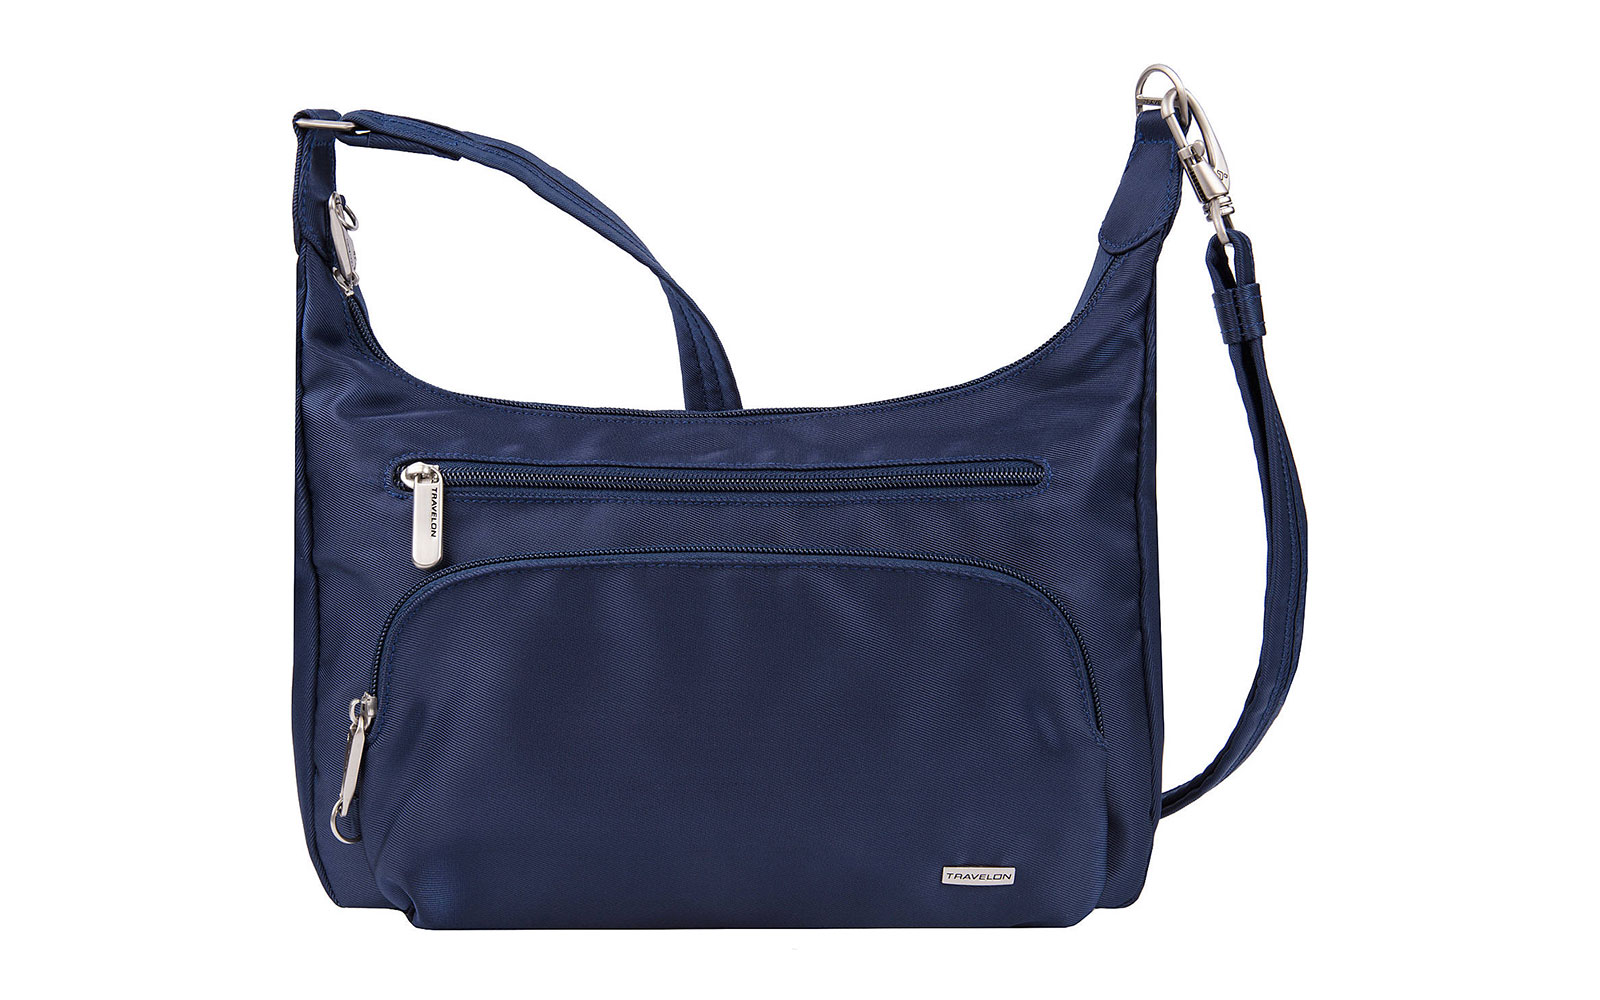 Travelon Anti-Theft Front Pocket Crossbody Bag with RFID